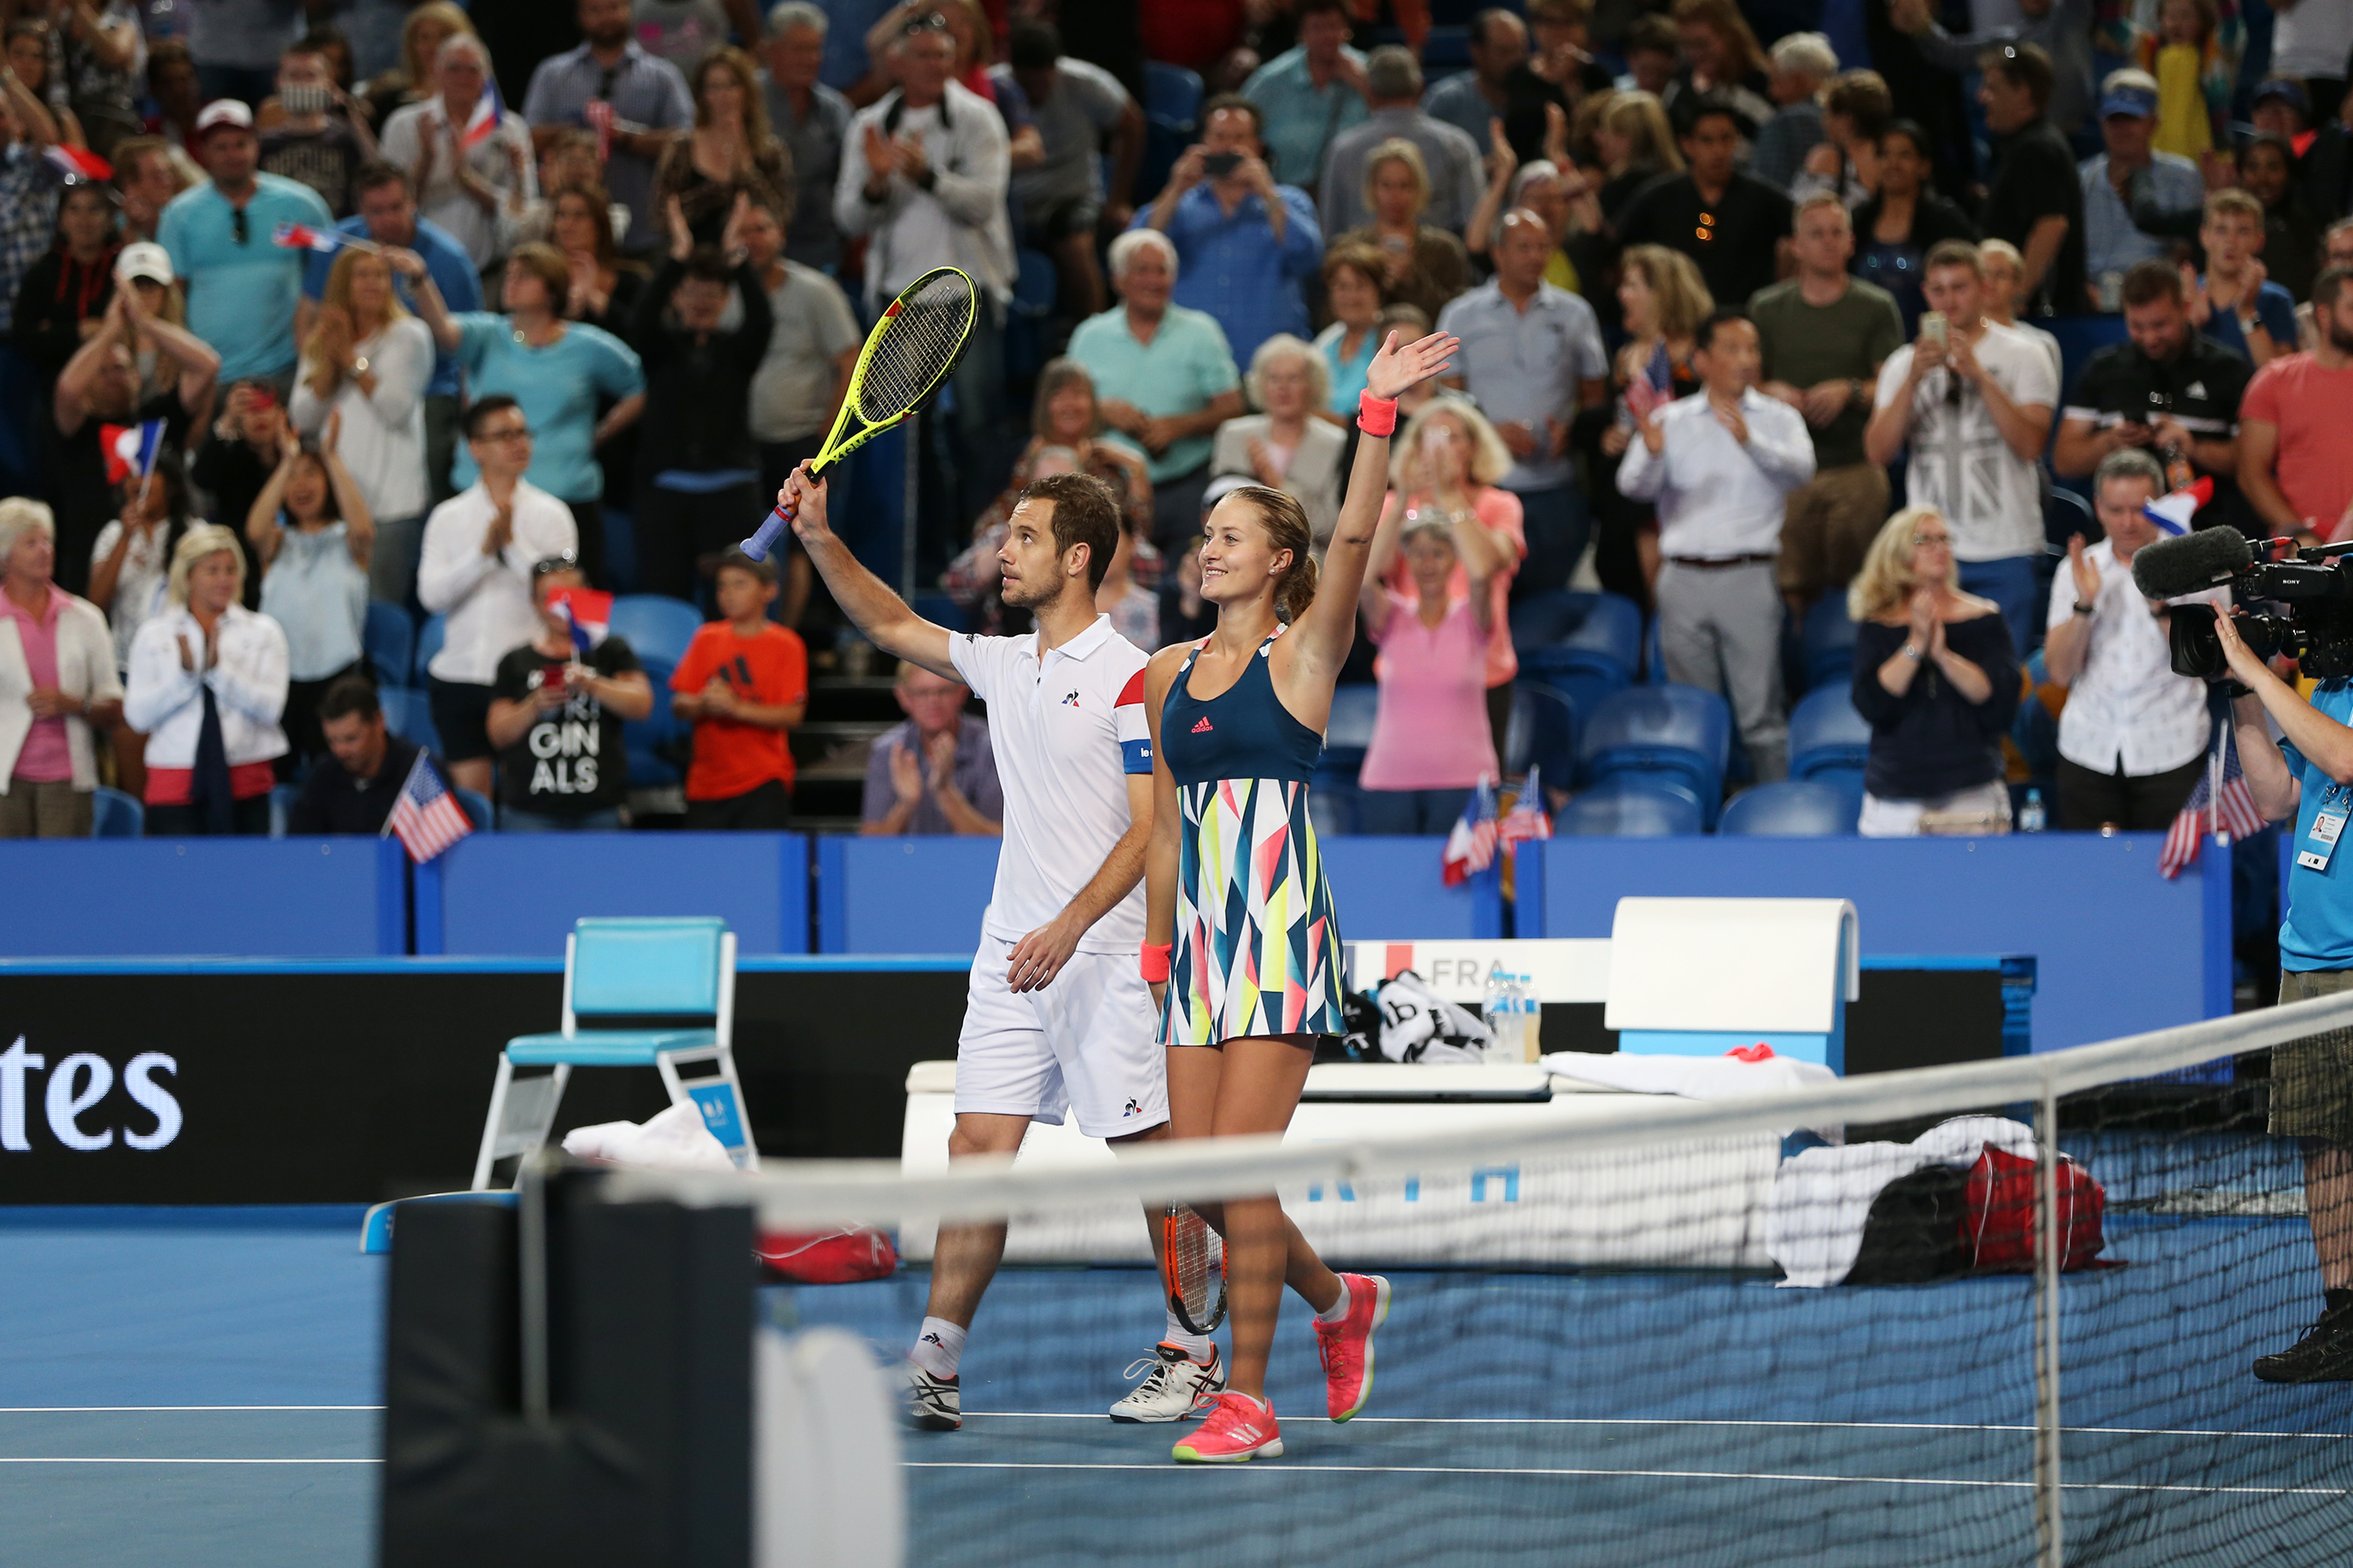 Kristina Mladenovic and Richard Gasquet (France) celebrate the win